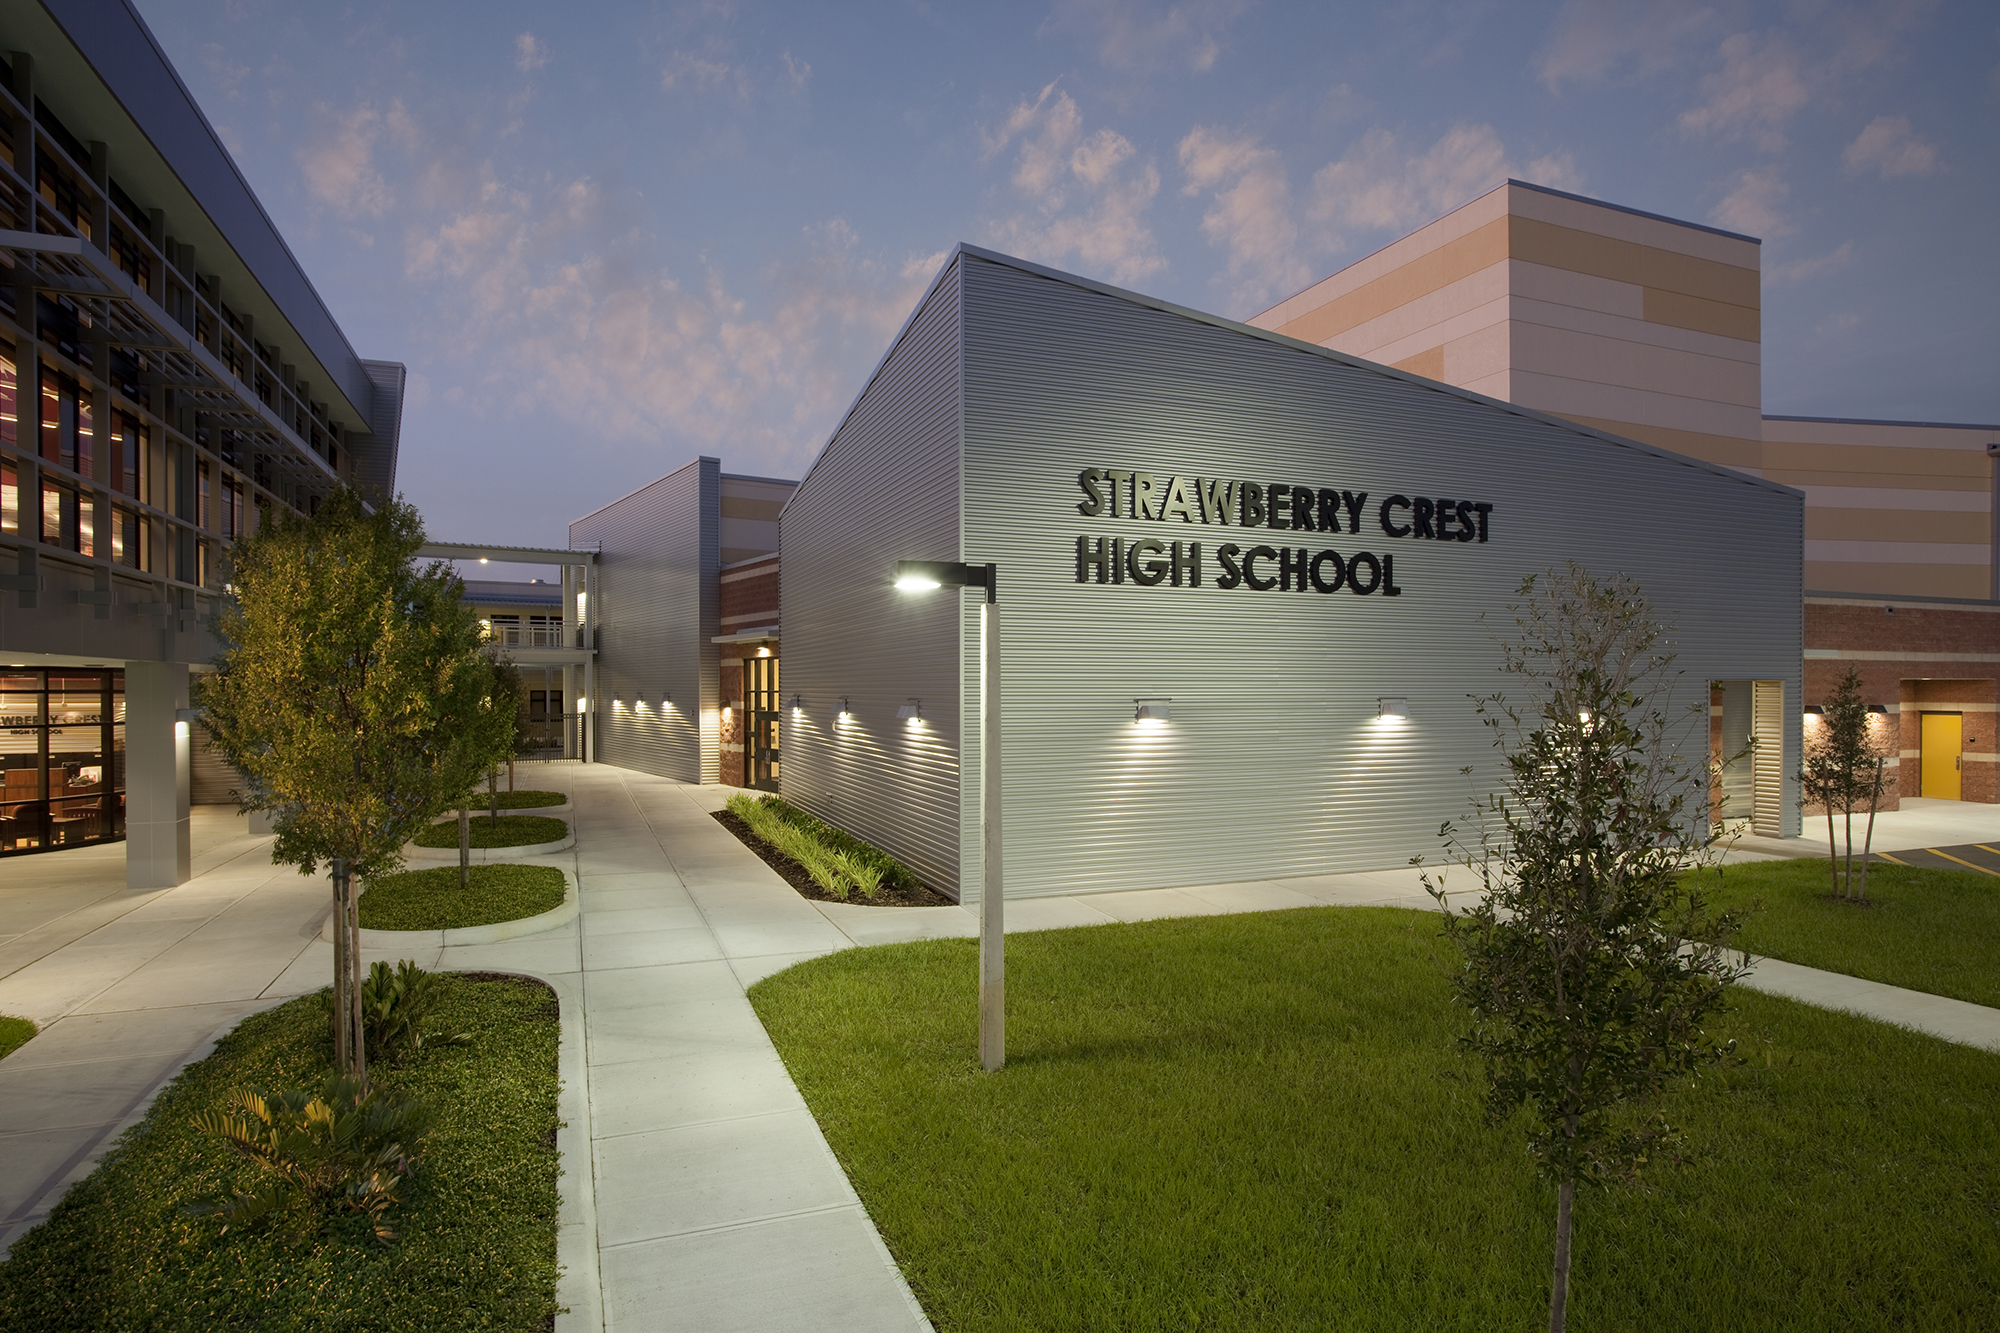 Elementary School Rankings >> Strawberry Crest High School - The Beck Group